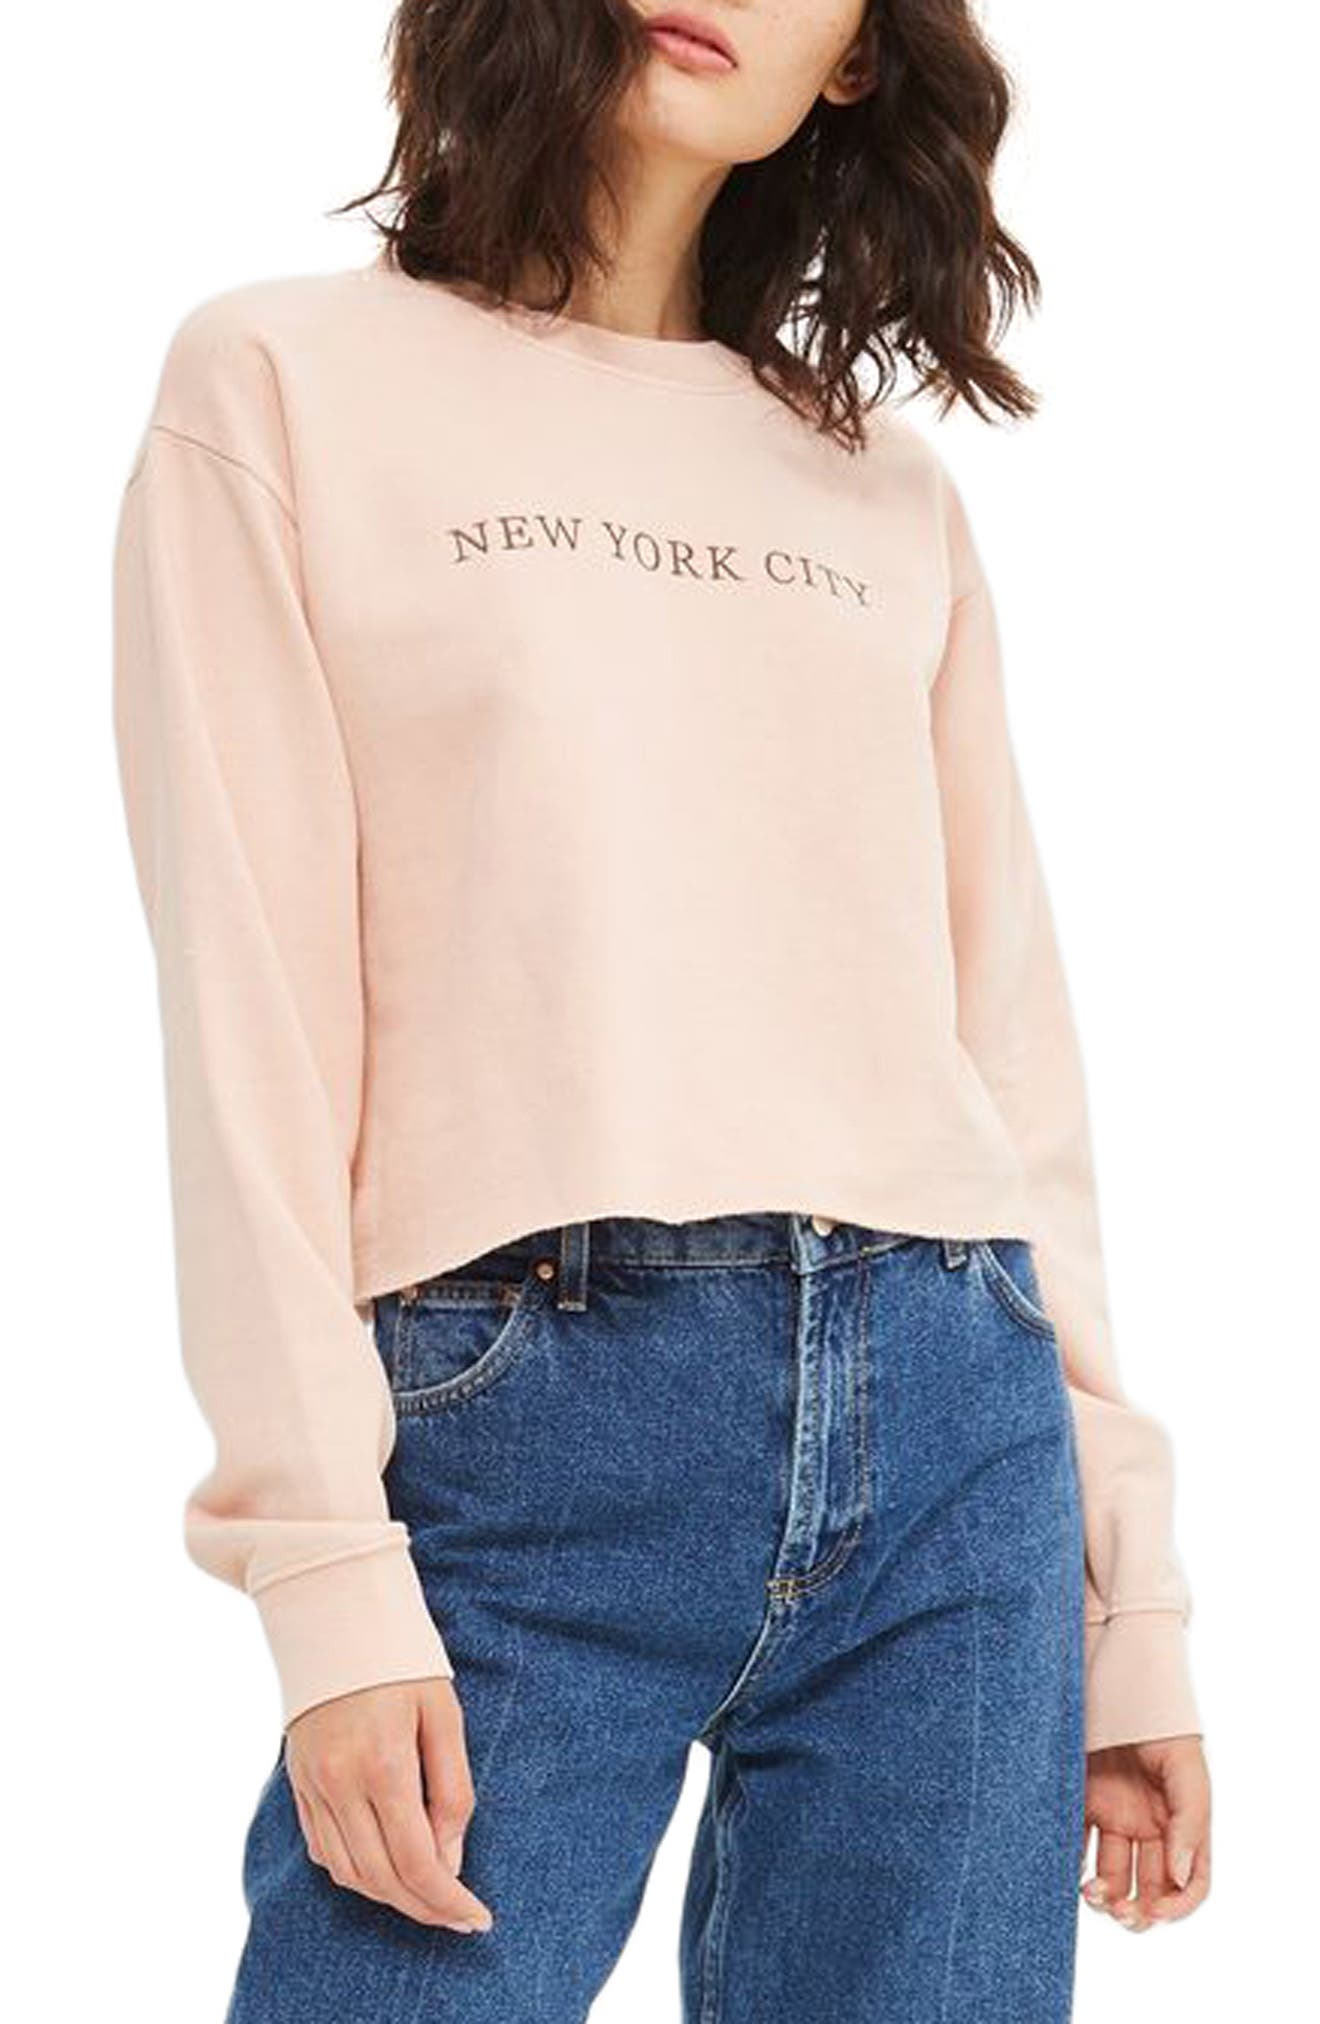 Topshop New York City Embroidered Sweatshirt